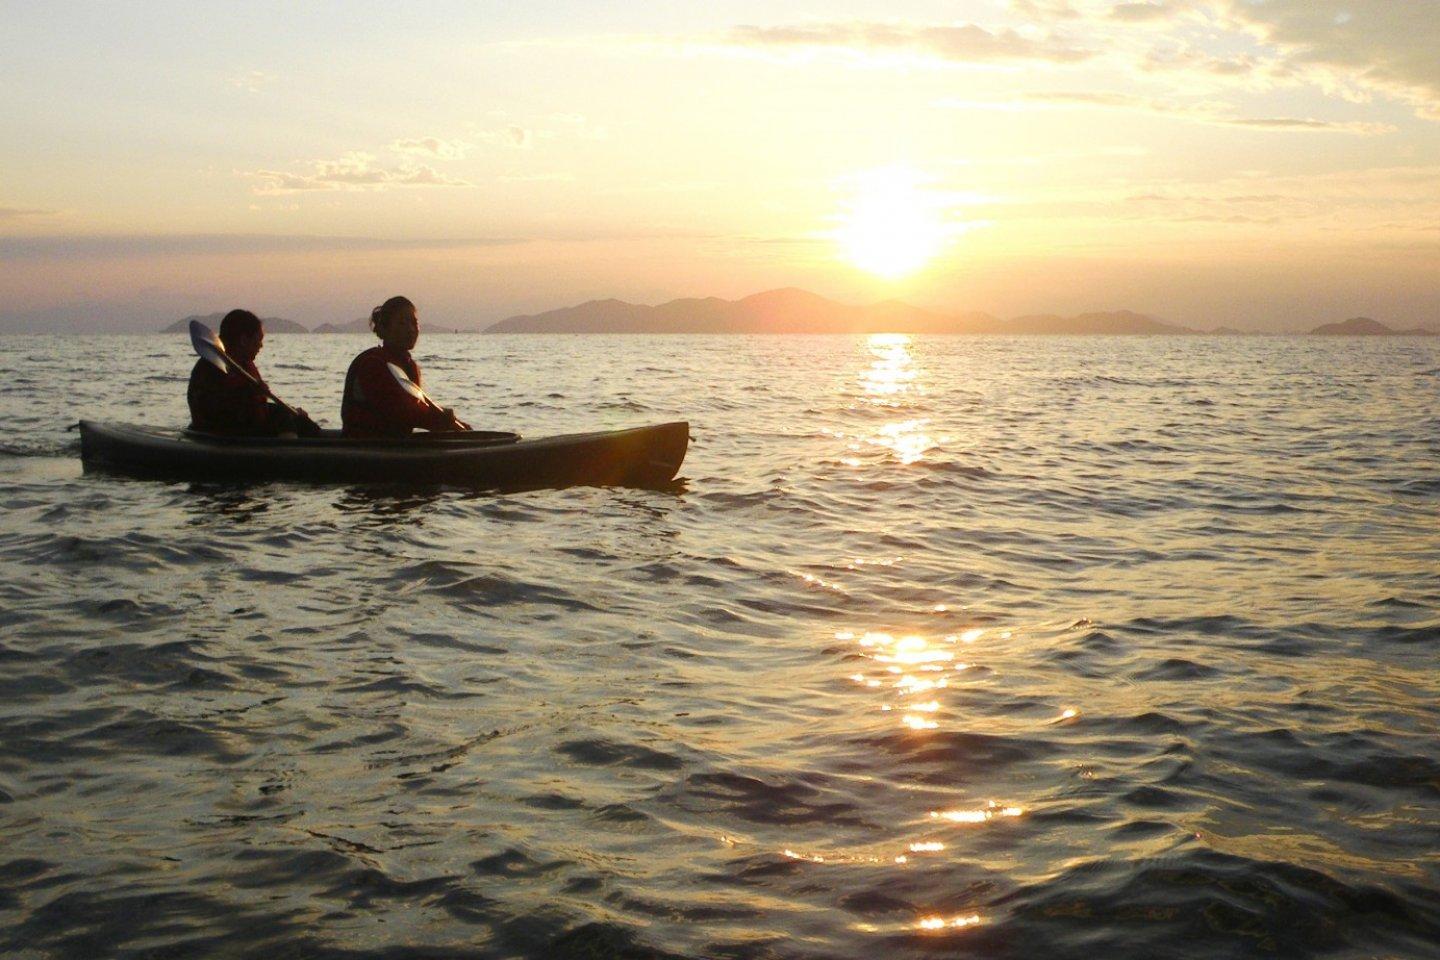 Experience the beauty and serenity of Lake Biwa with a sunrise boat trip.